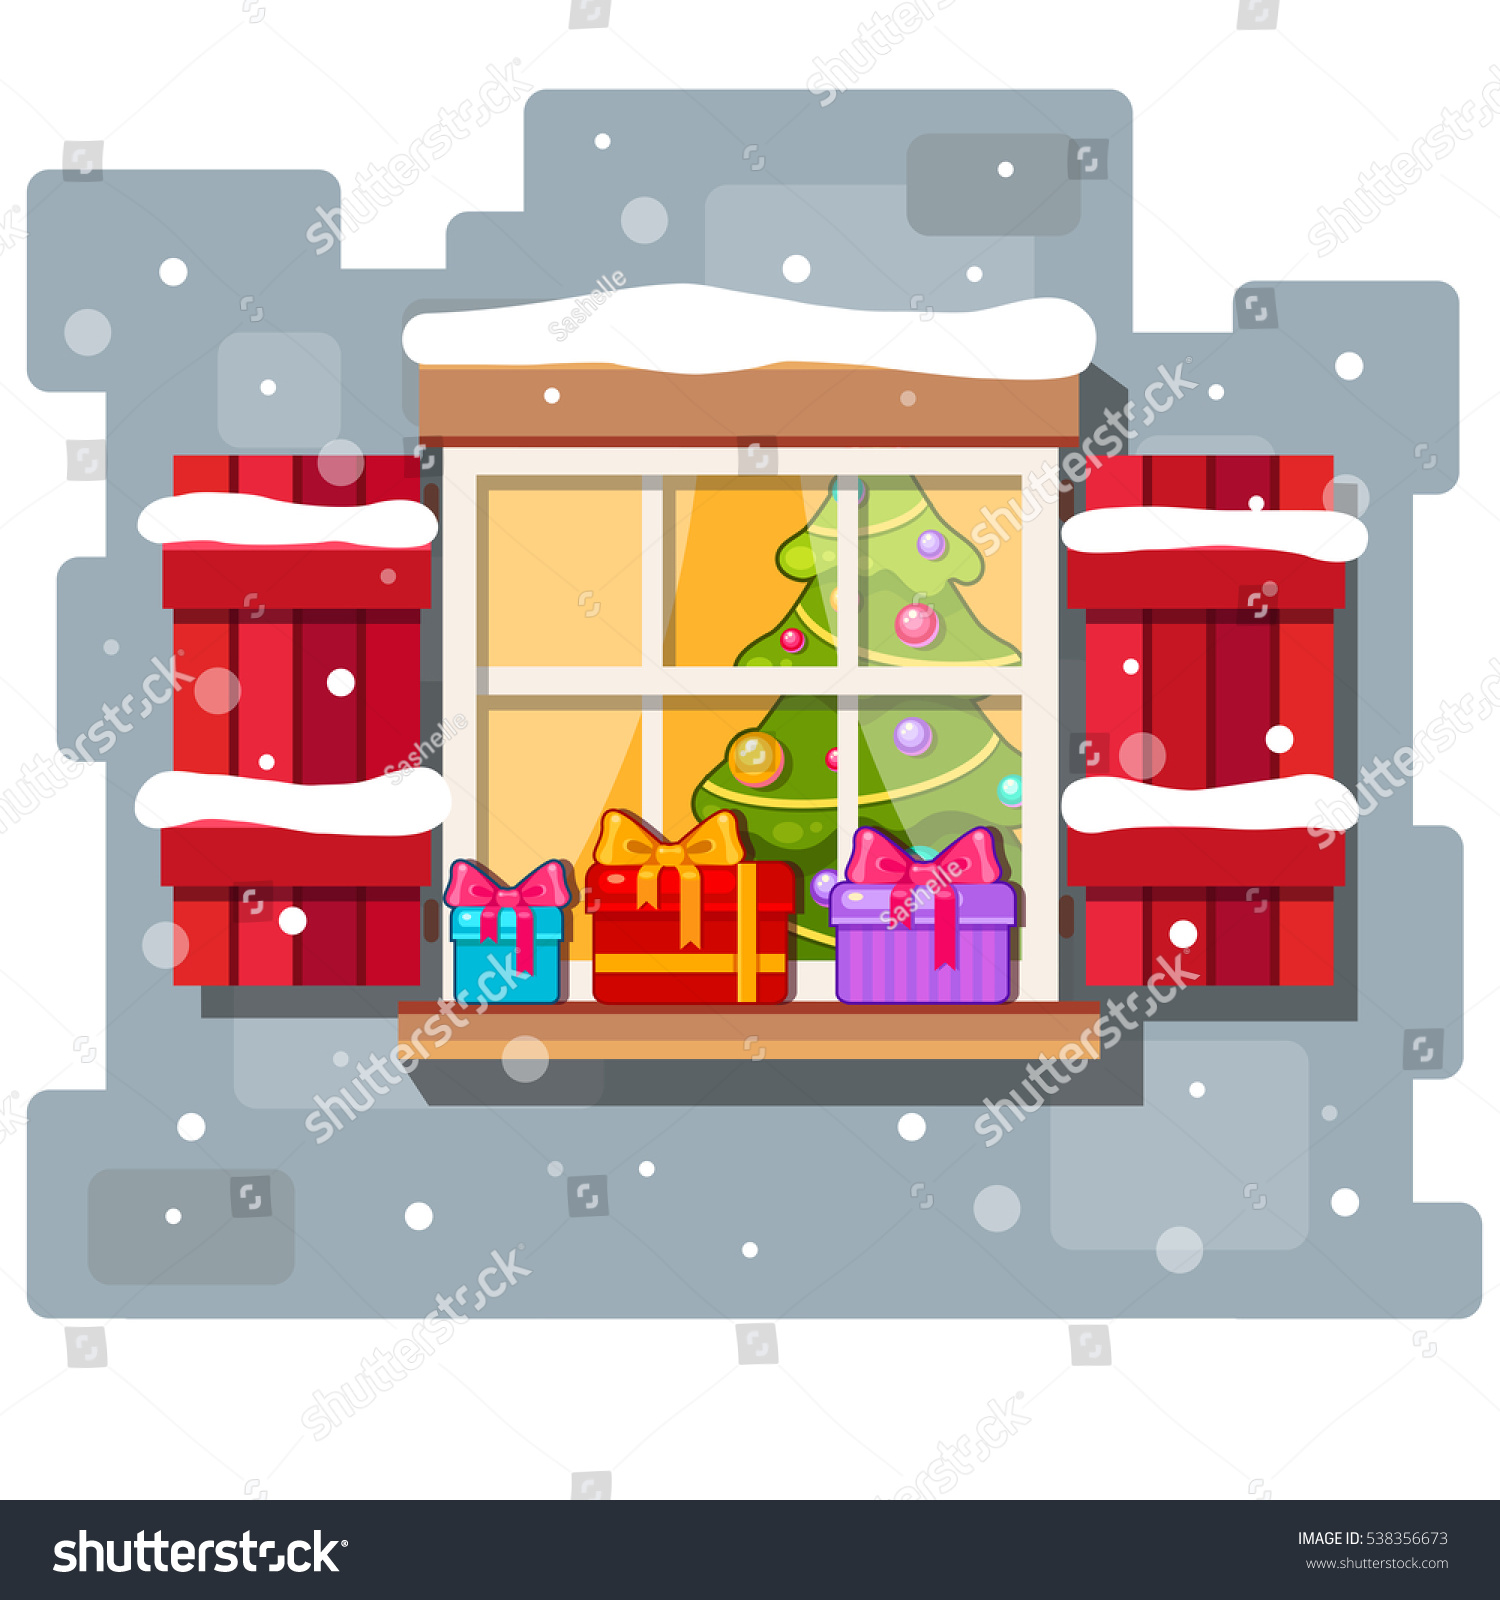 Cartoon kitchen with cabinets and window vector art illustration -  Vectors Illustrations Footage Music Vector Christmas Window With Red Shutters Presents And A New Year Tree Inside Cartoon